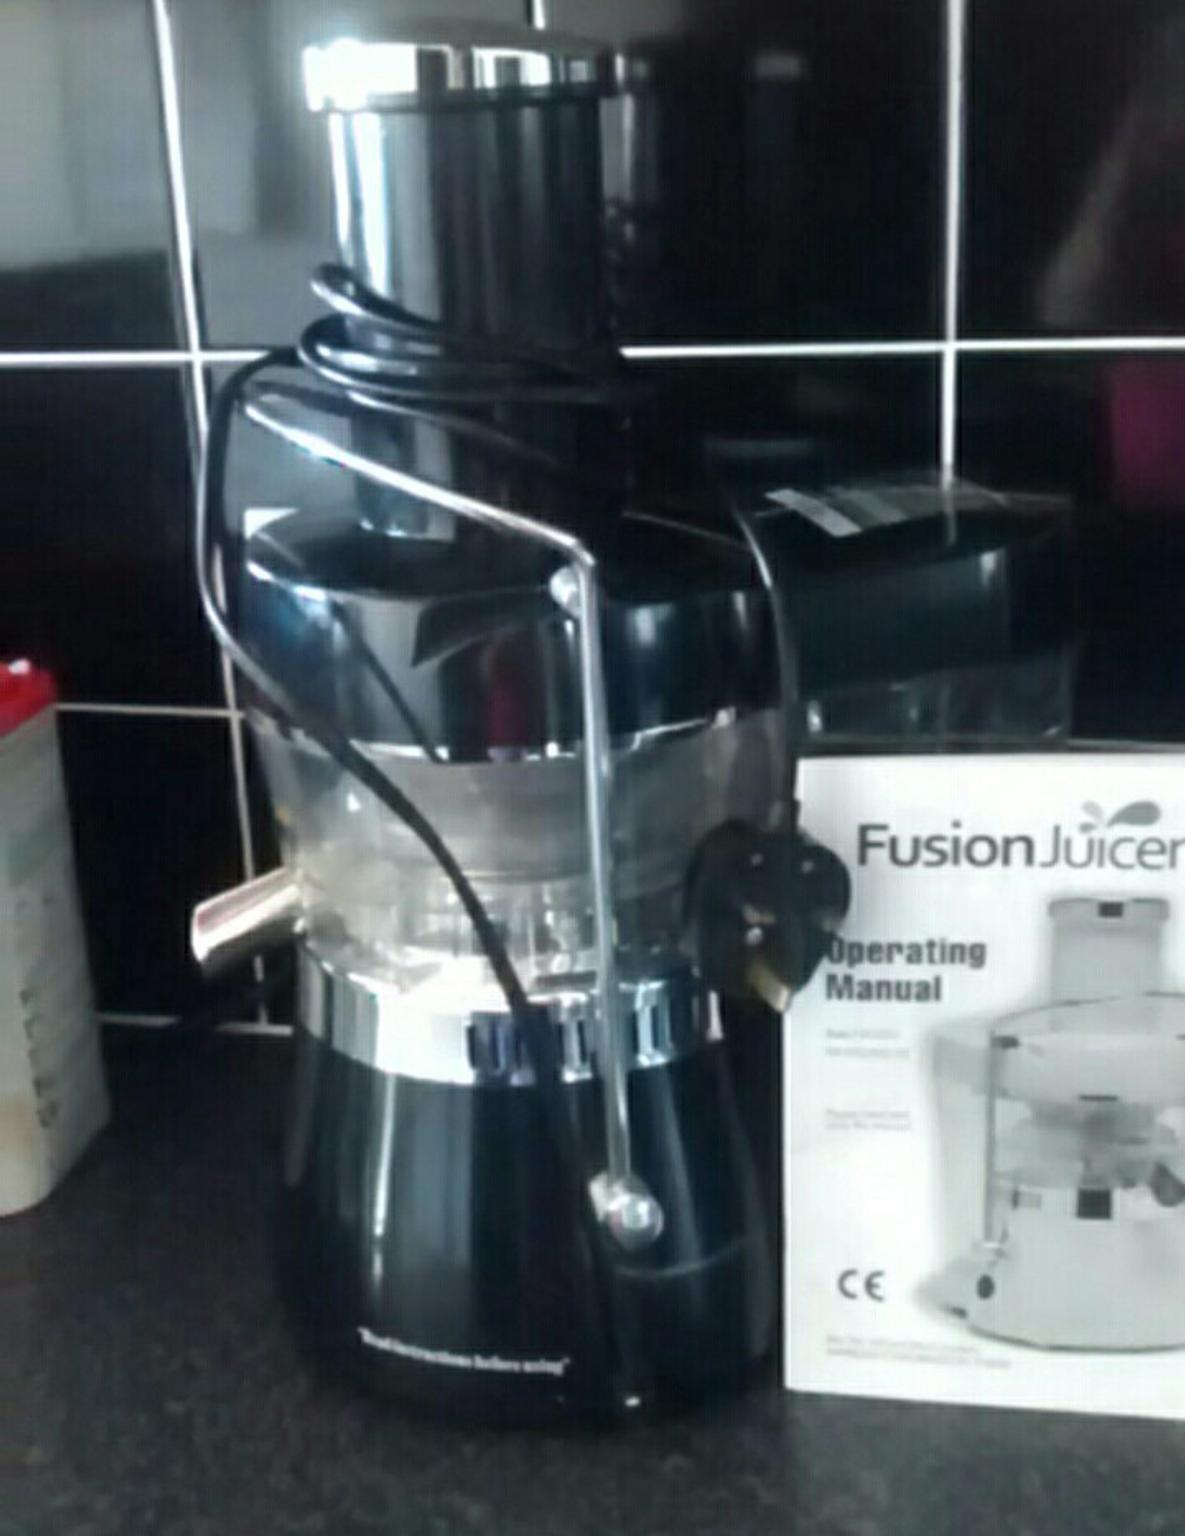 Jason vale fusion juicer in W4 London for free for sale | Shpock